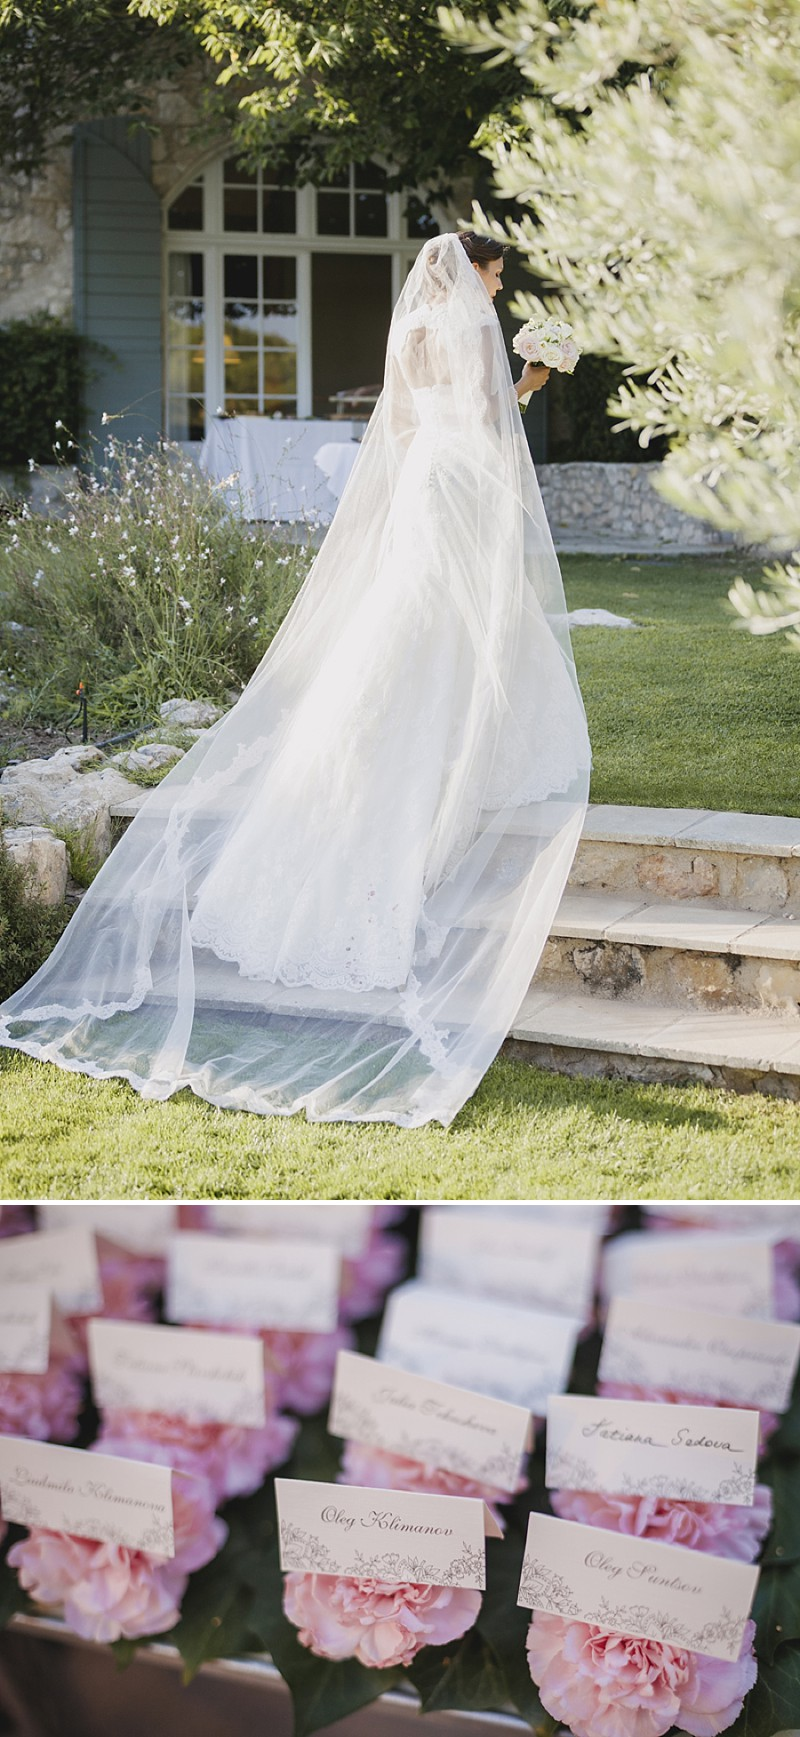 Elegant Wedding At Le Mas De La Rose Provence With Bride In Lace Fishtail Gown By Pronovias And Groom In Navy Armani Tuxedo With Images From Jo Hastings Wedding Photography_0008